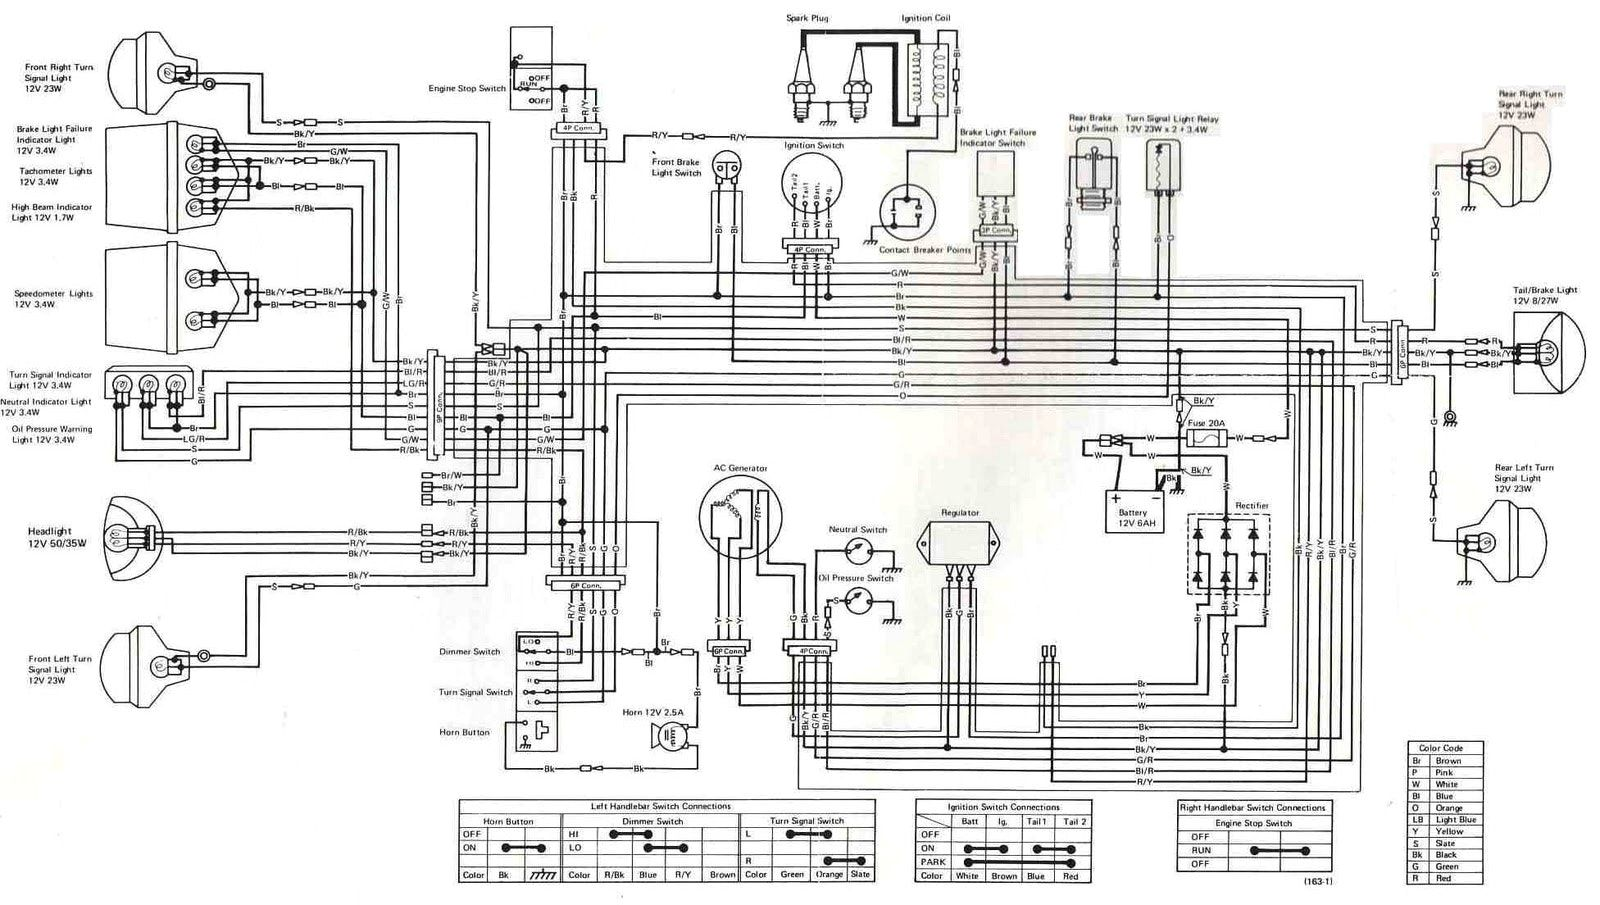 kawasaki vulcan 800 wiring diagram detailed schematics diagram rh  sdministries com 1998 kawasaki zx6r wiring diagram 1970 Kawasaki 250 Wiring  Diagram